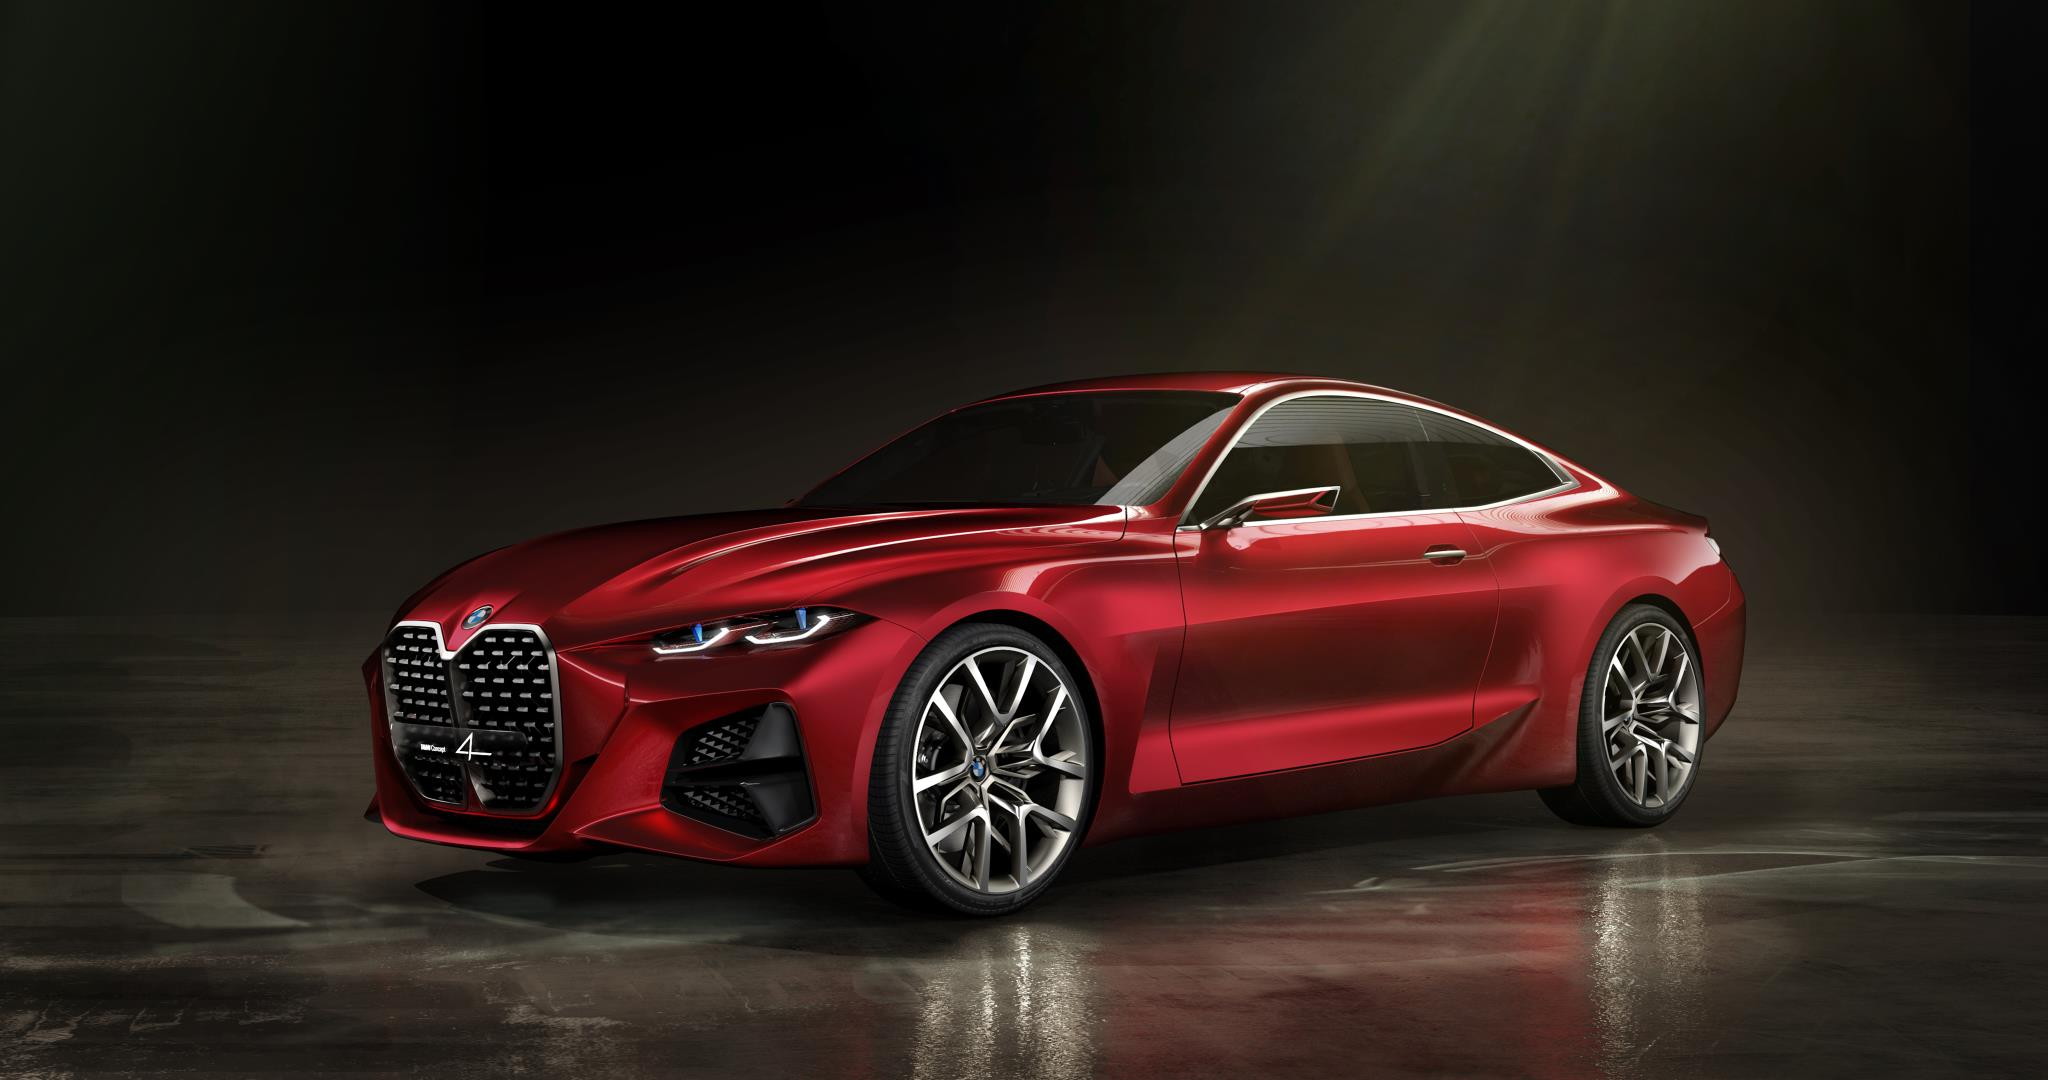 The Concept 4 gives a glimpse of what the upcoming 4 Series could look like